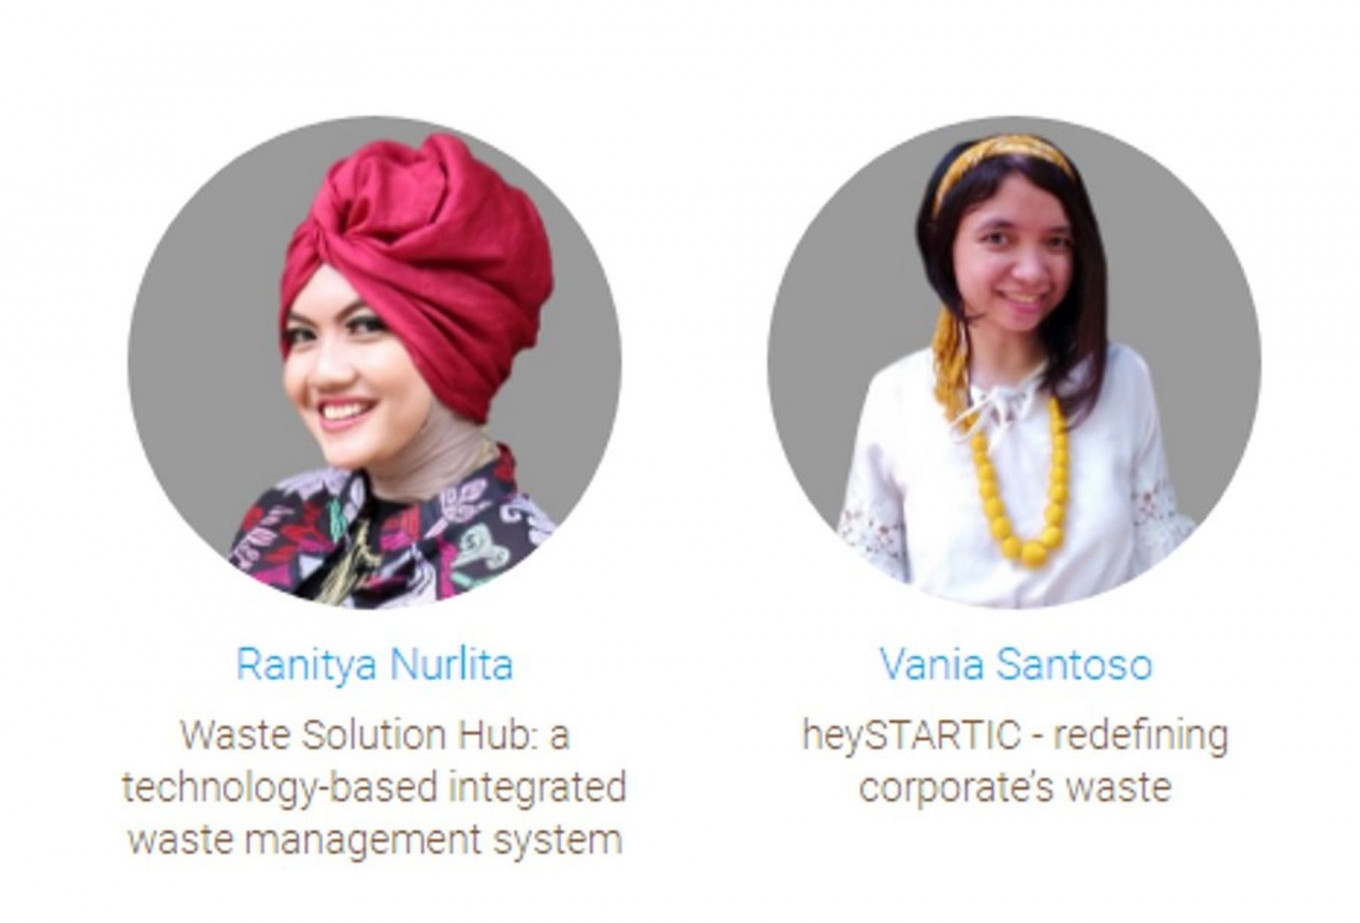 Two Indonesian finalists shortlisted for Young Champions of the Earth prize